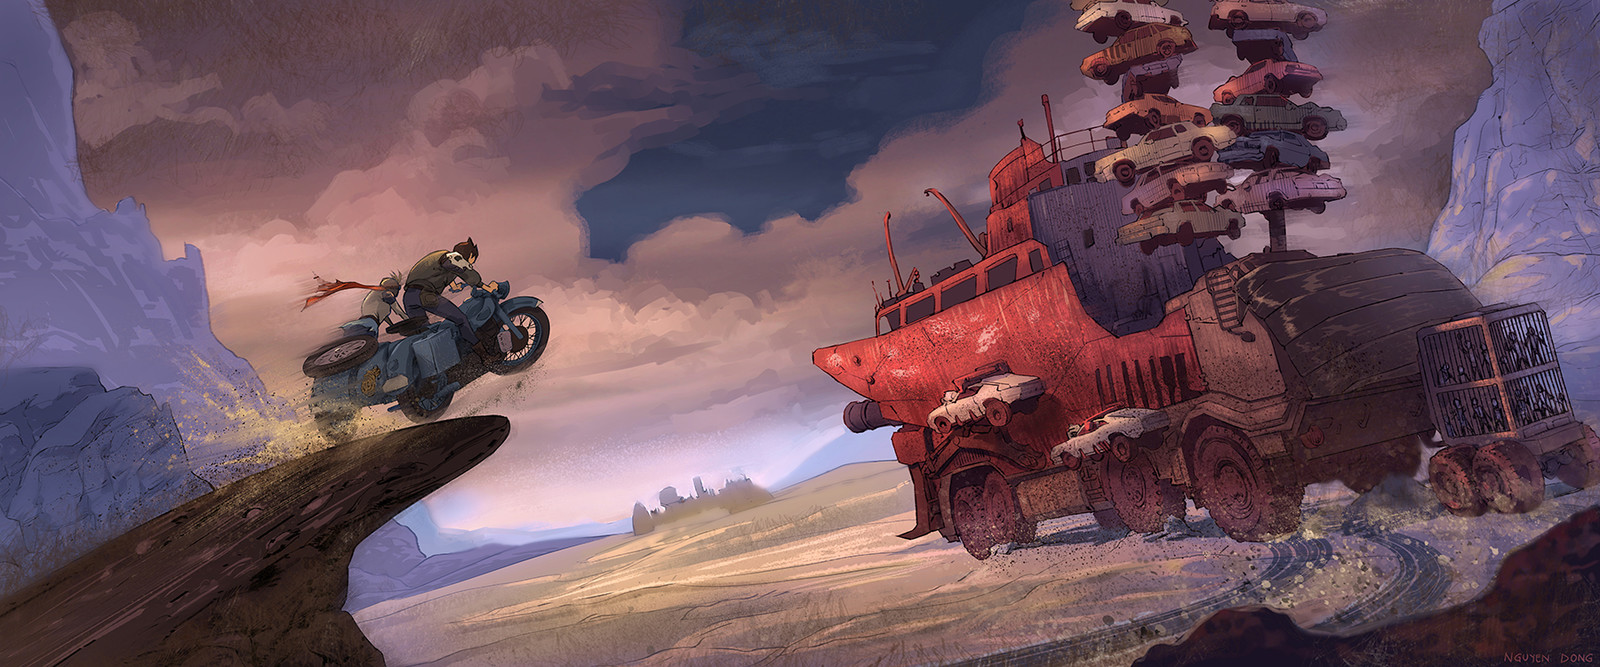 Hans and his sister chase the Wasteland Witch's big rig key frame.